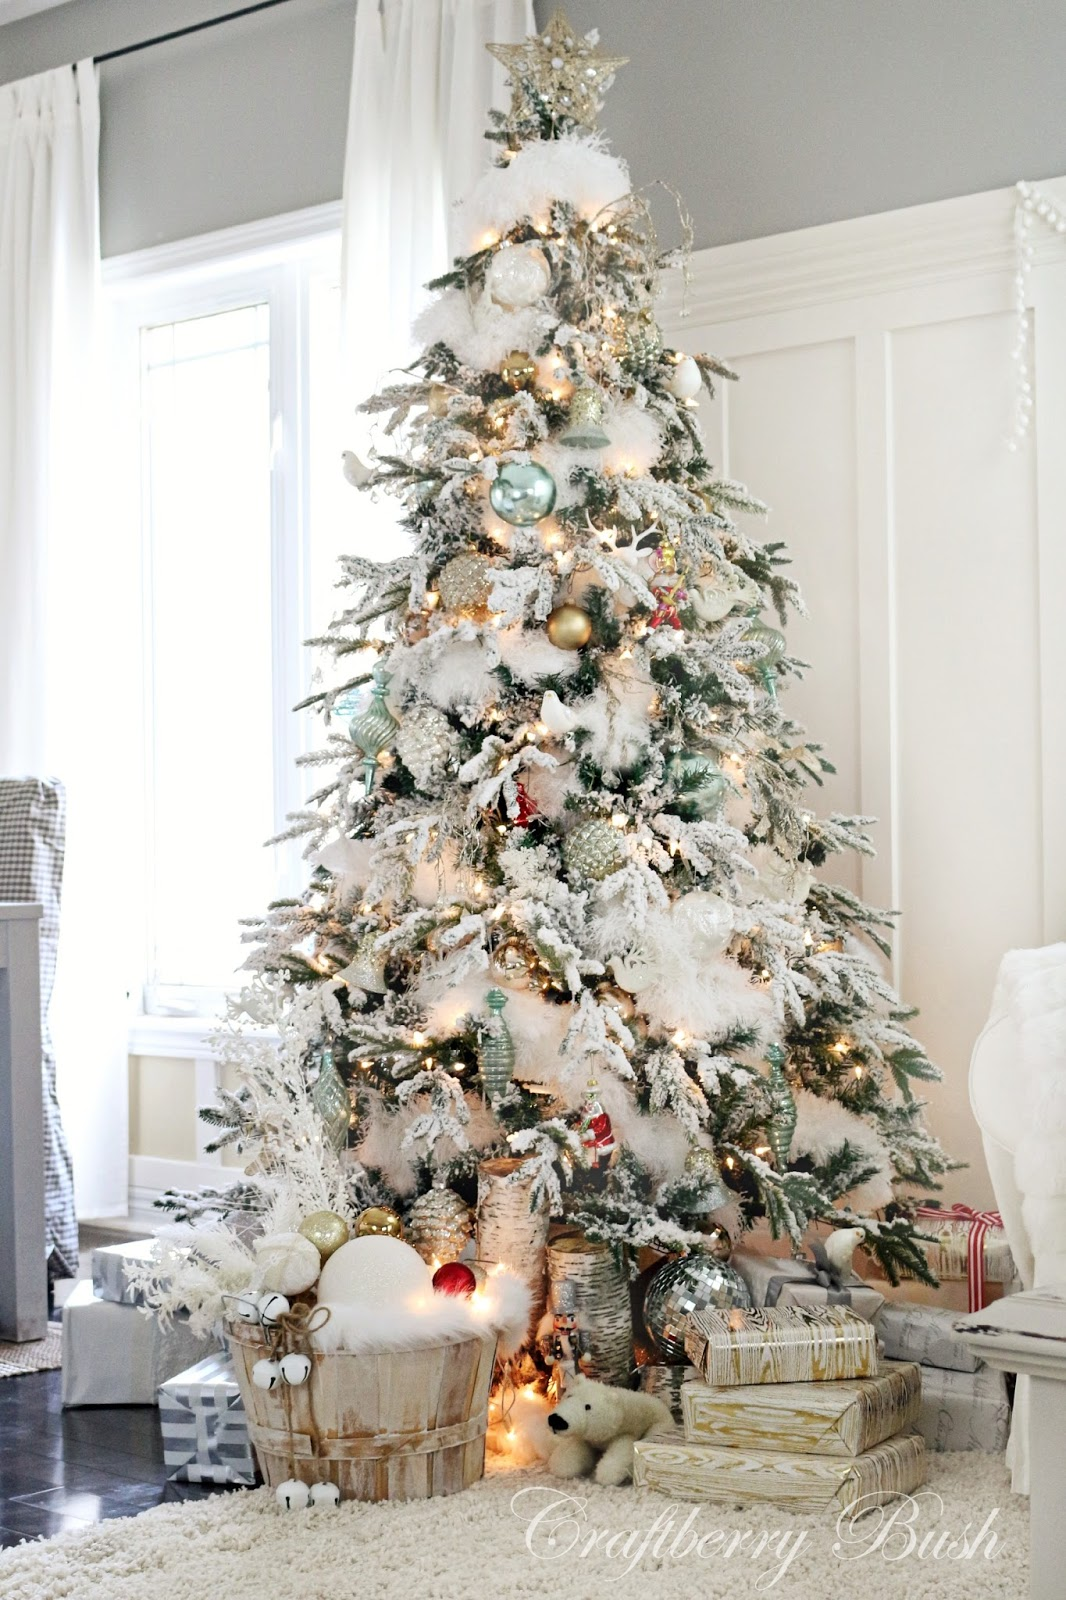 Holiday Home Tour Grand Finale: {Craftberry Bush} - Unskinny Boppy